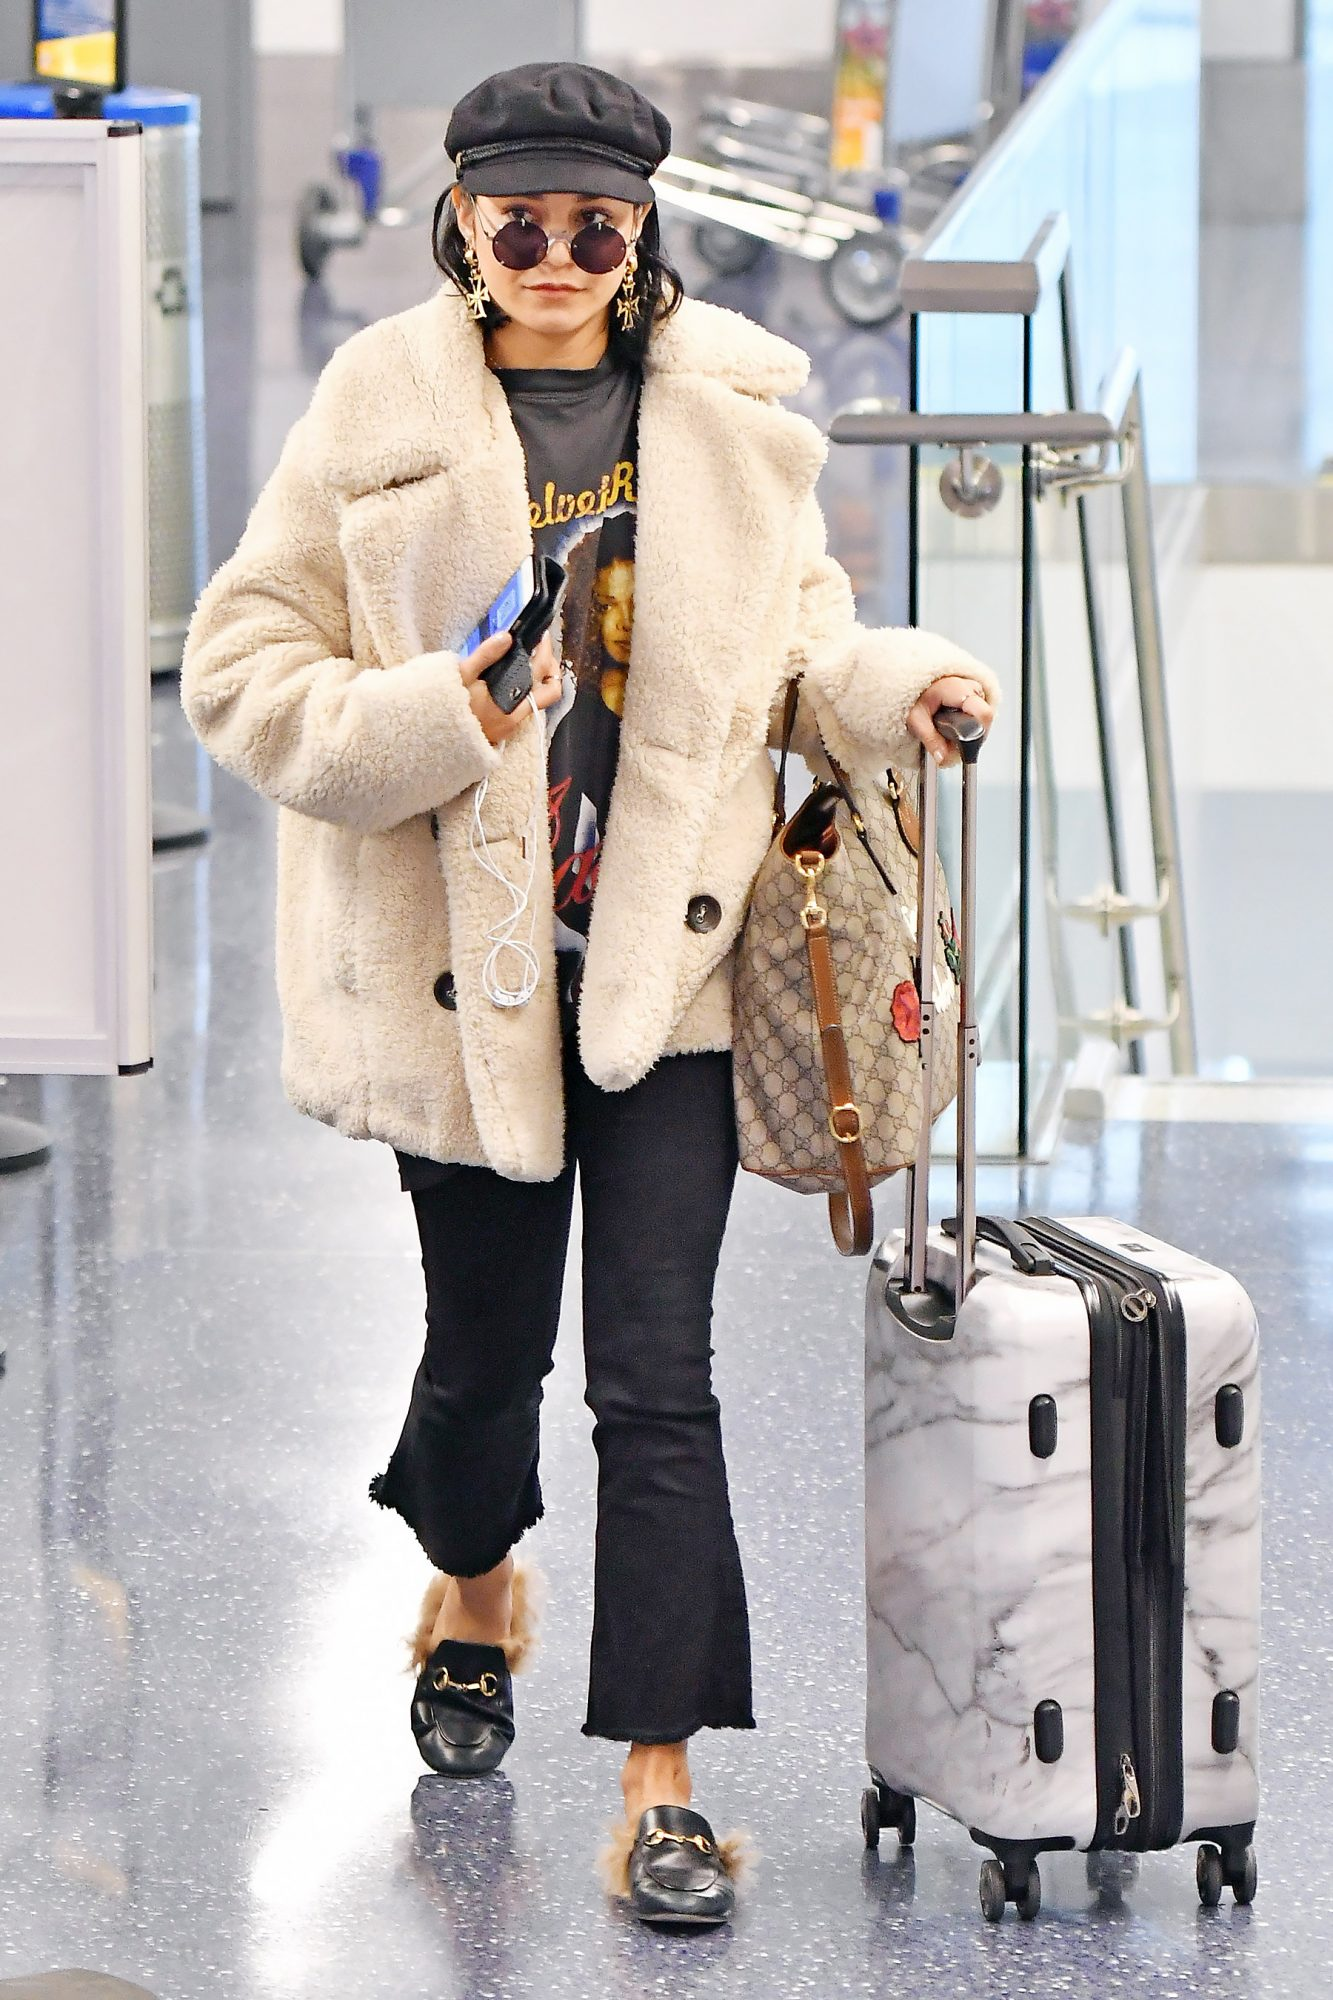 EXCLUSIVE: Vanessa Hudgens arrives at LAX in a fur coat and a vintage Janet Jackson T Shirt